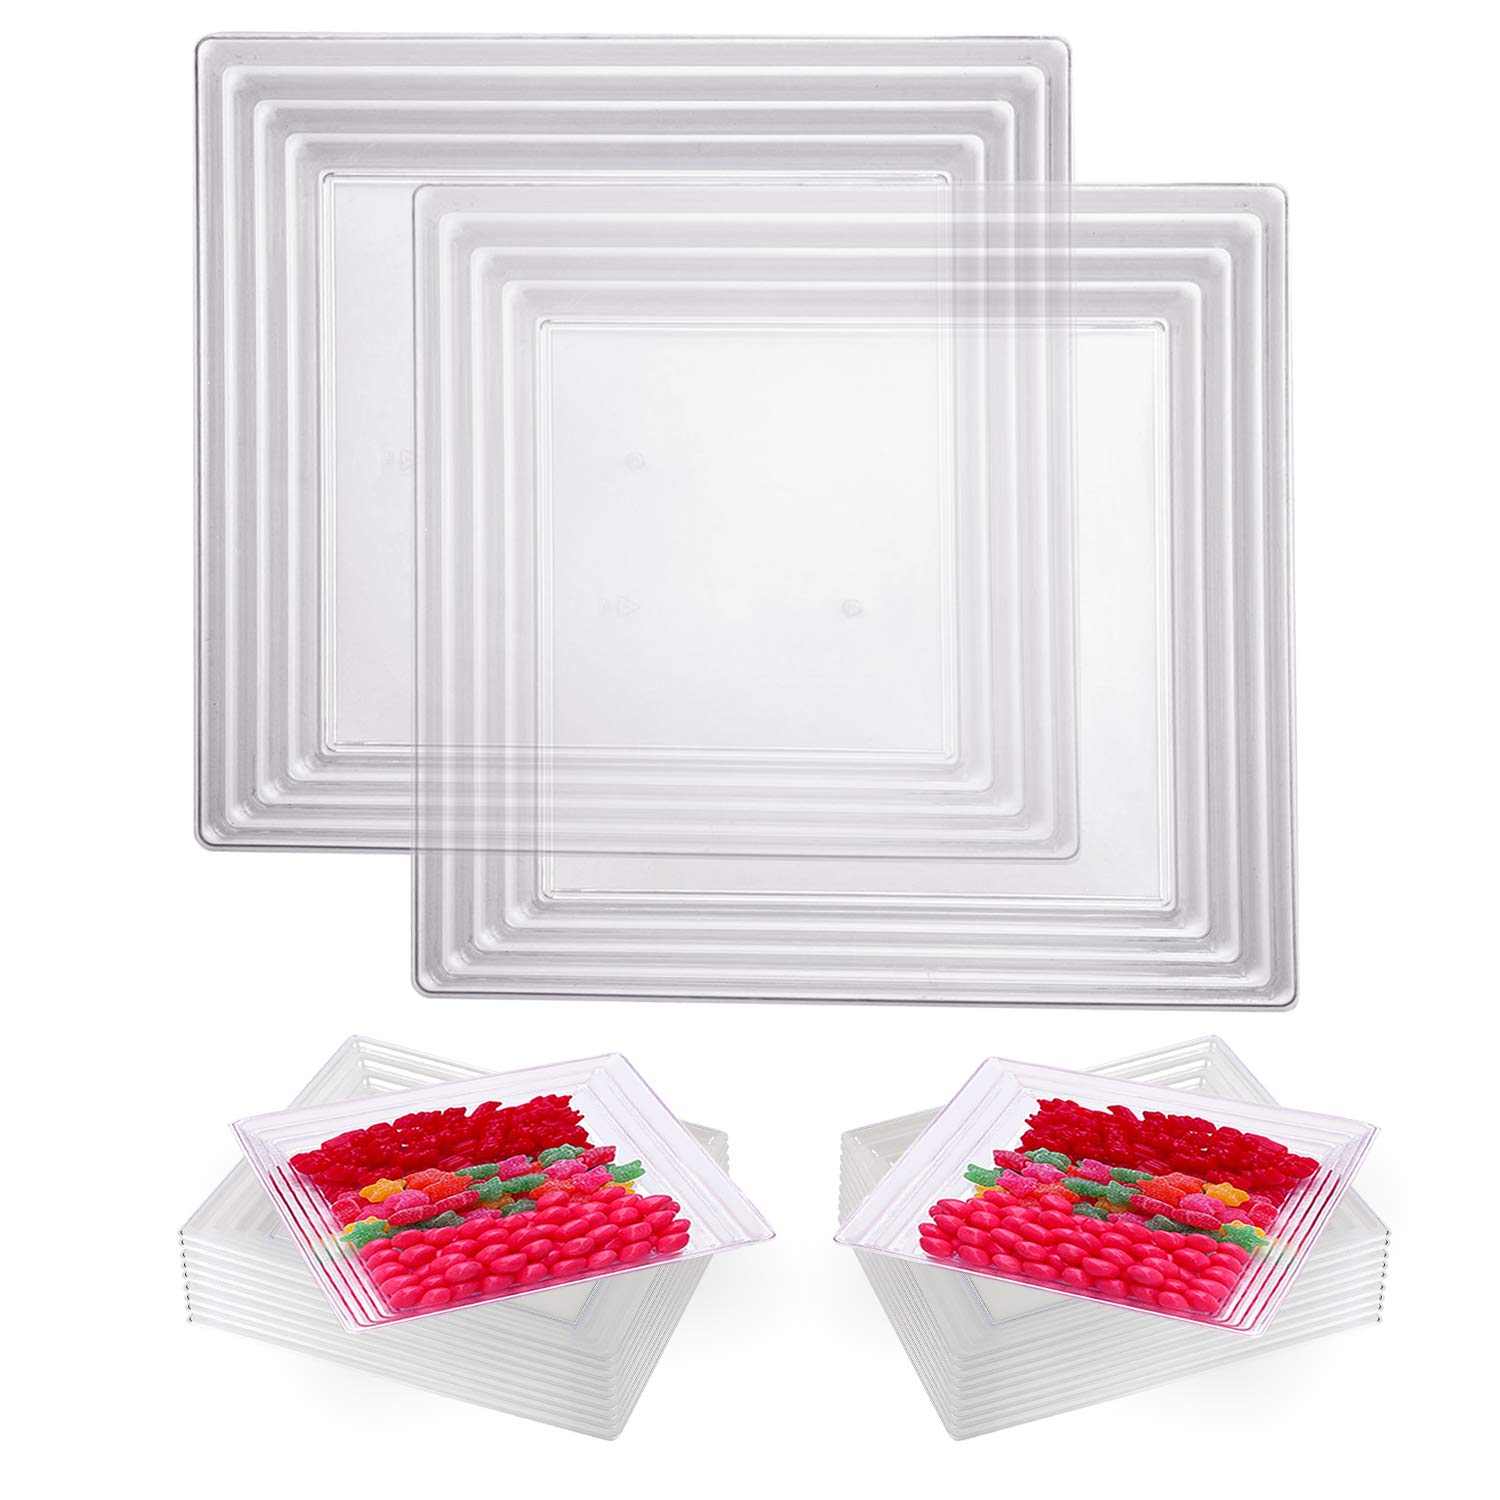 """Elegant Disposable Plastic Serving Trays 24 Pcs – Heavyweight Fancy 12""""x12"""" Square Clear Large Serving Platters - Reusable Appetizer Tray Party Set For Wedding, Thanksgiving, Birthday & All Occasions"""